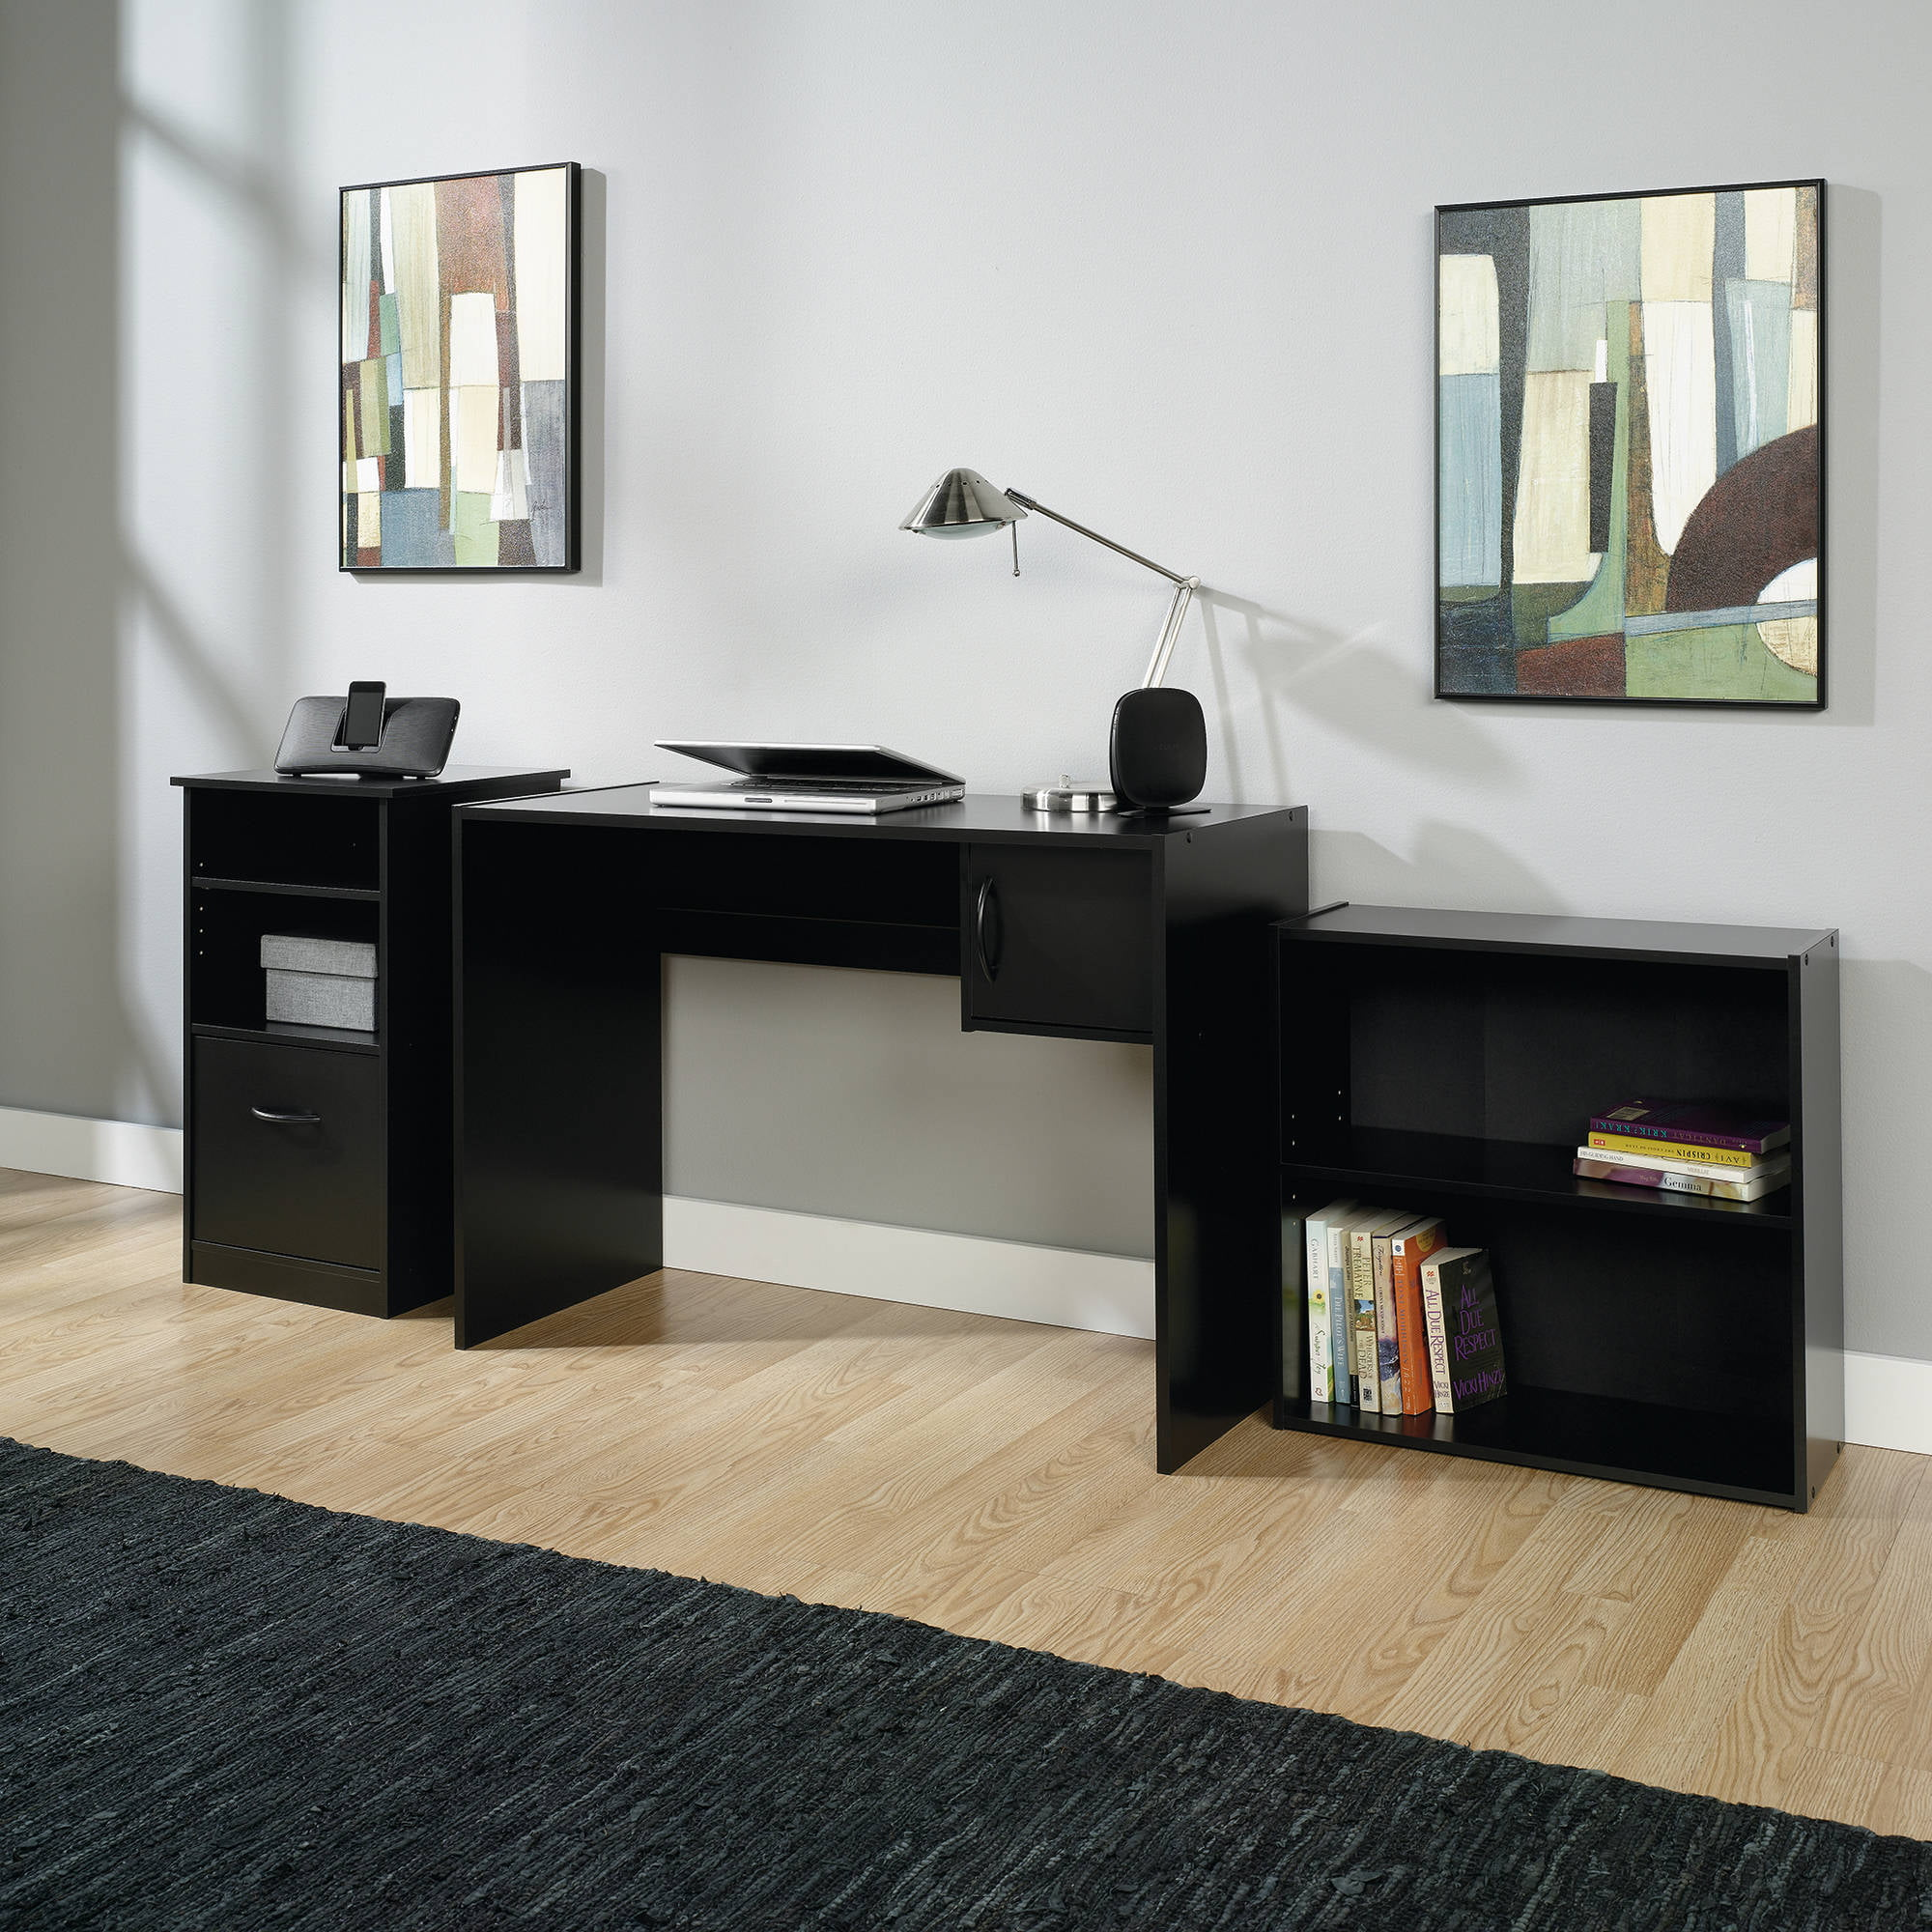 Mainstays 3 Piece Office Set, Black   Walmart.com